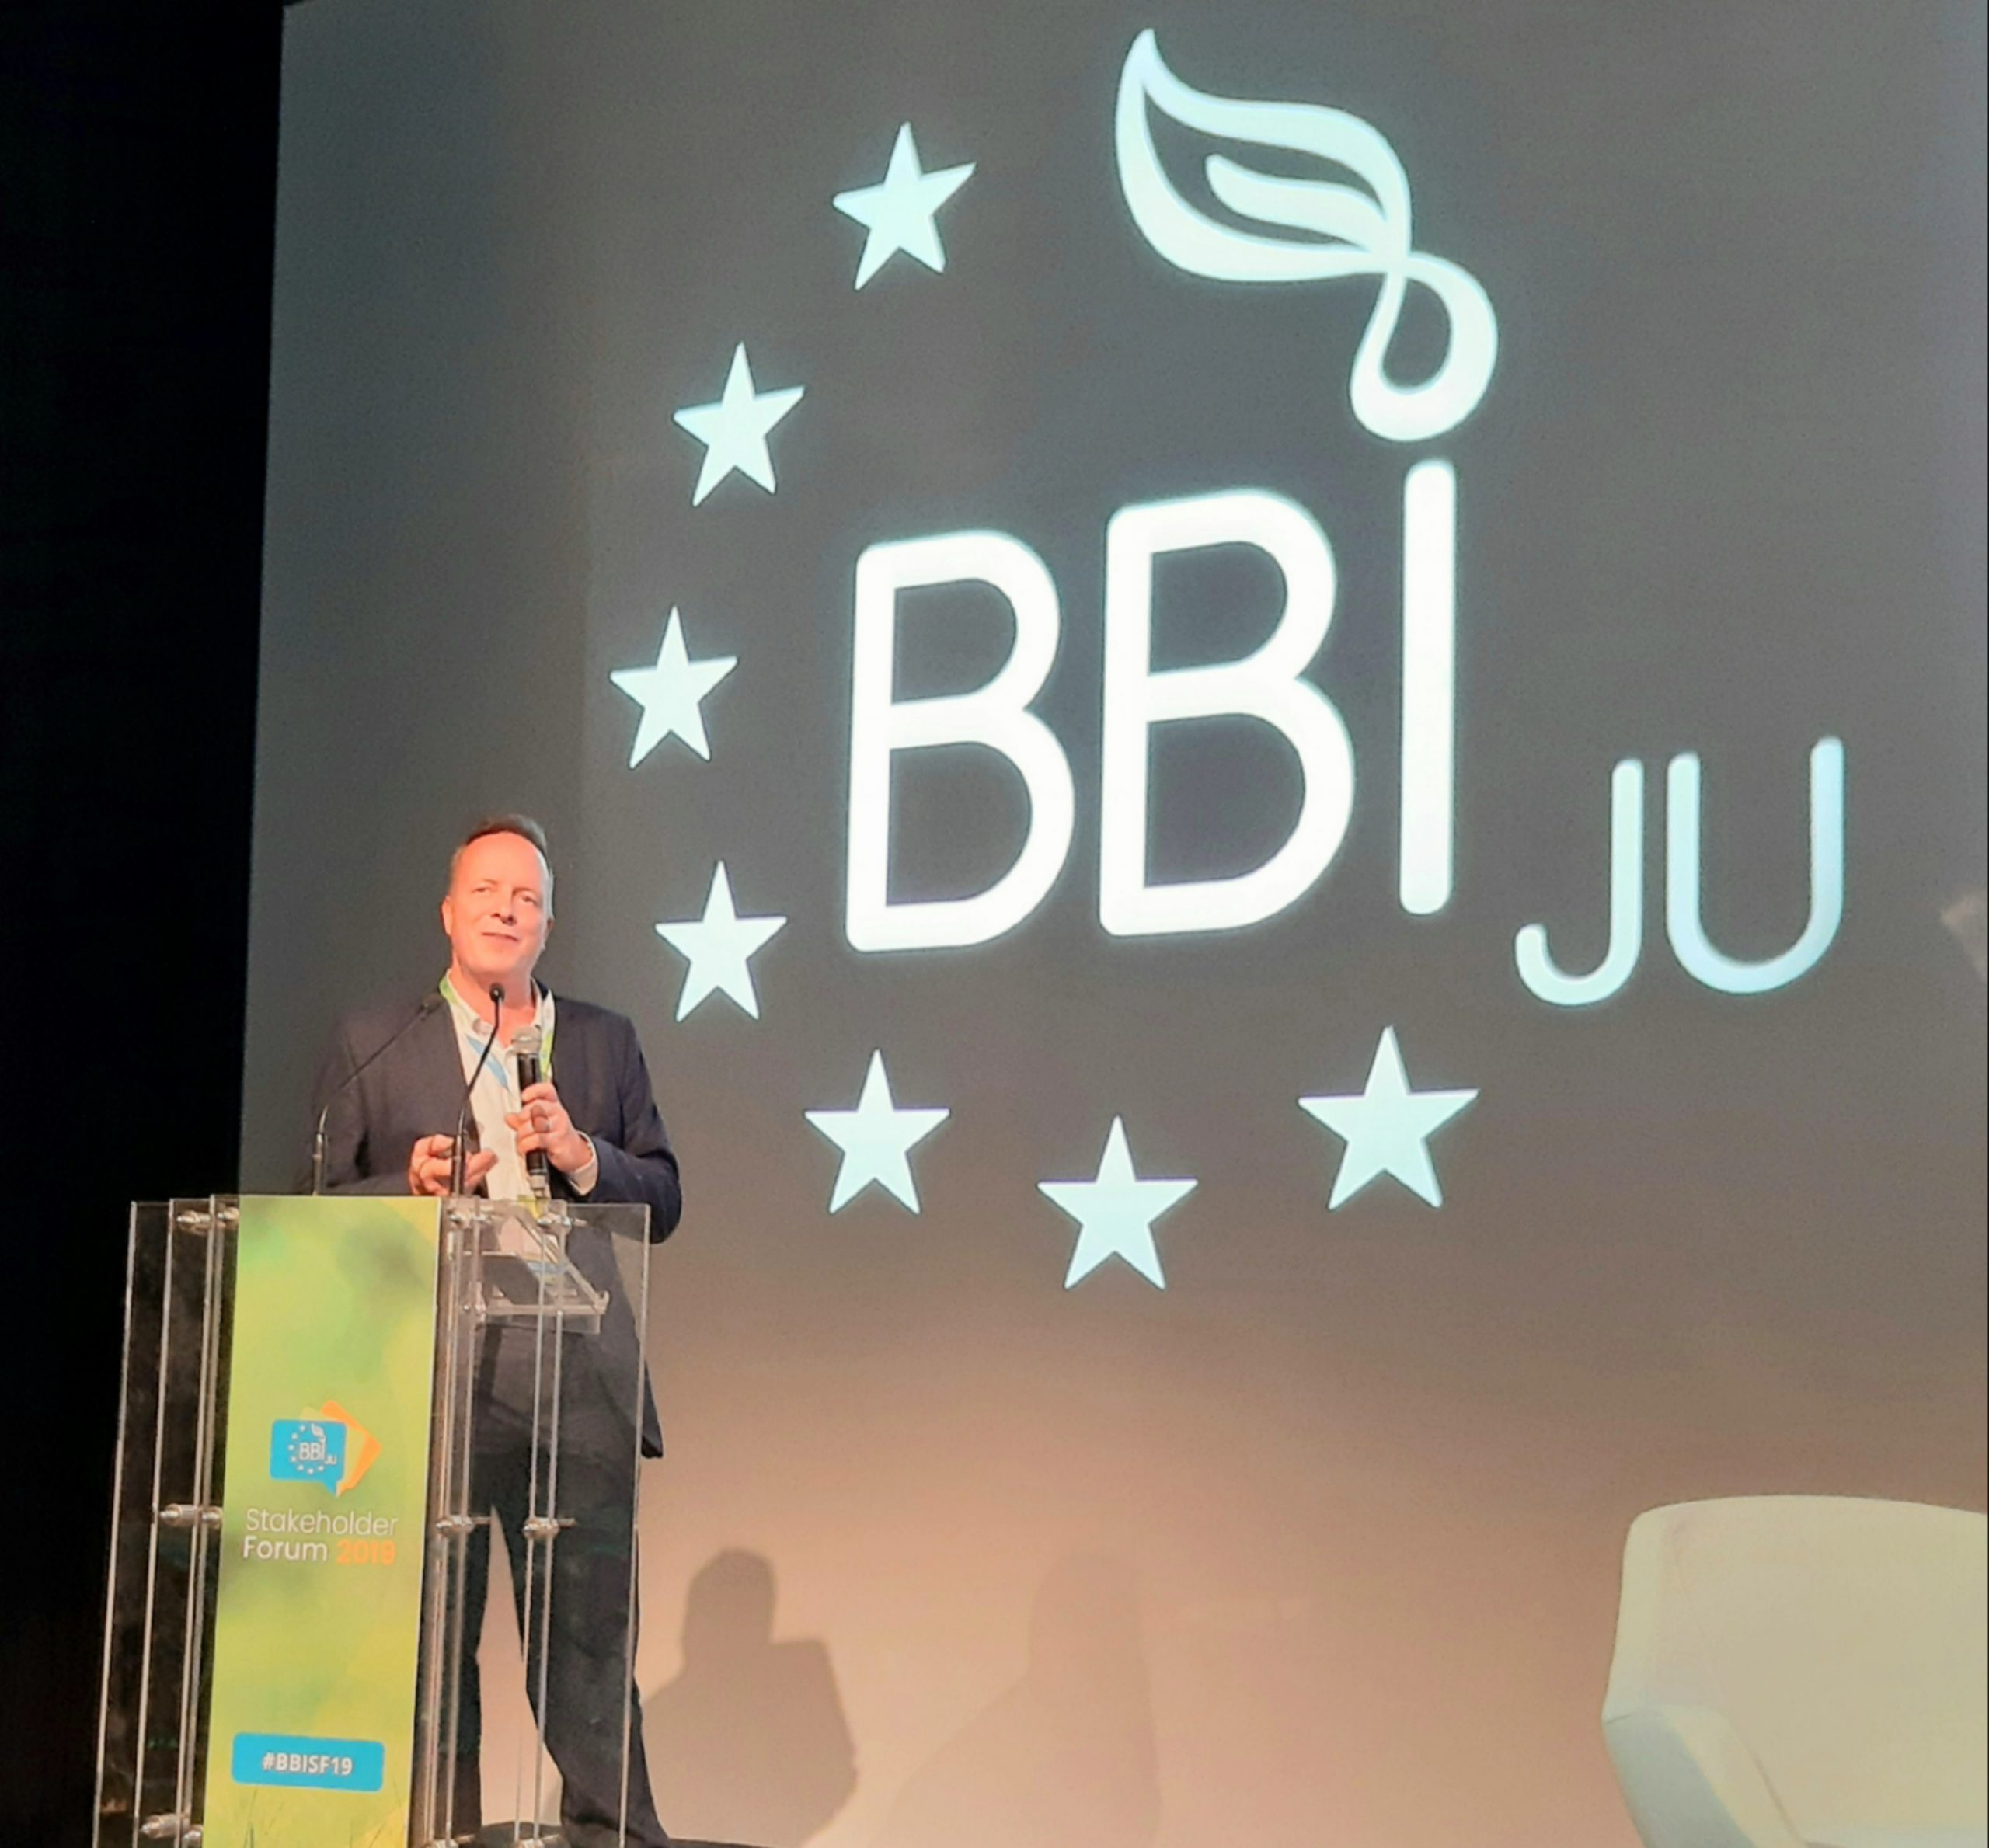 Dec 2019 – Plenitude Gaining Traction At BBI Stakeholder Forum 2019